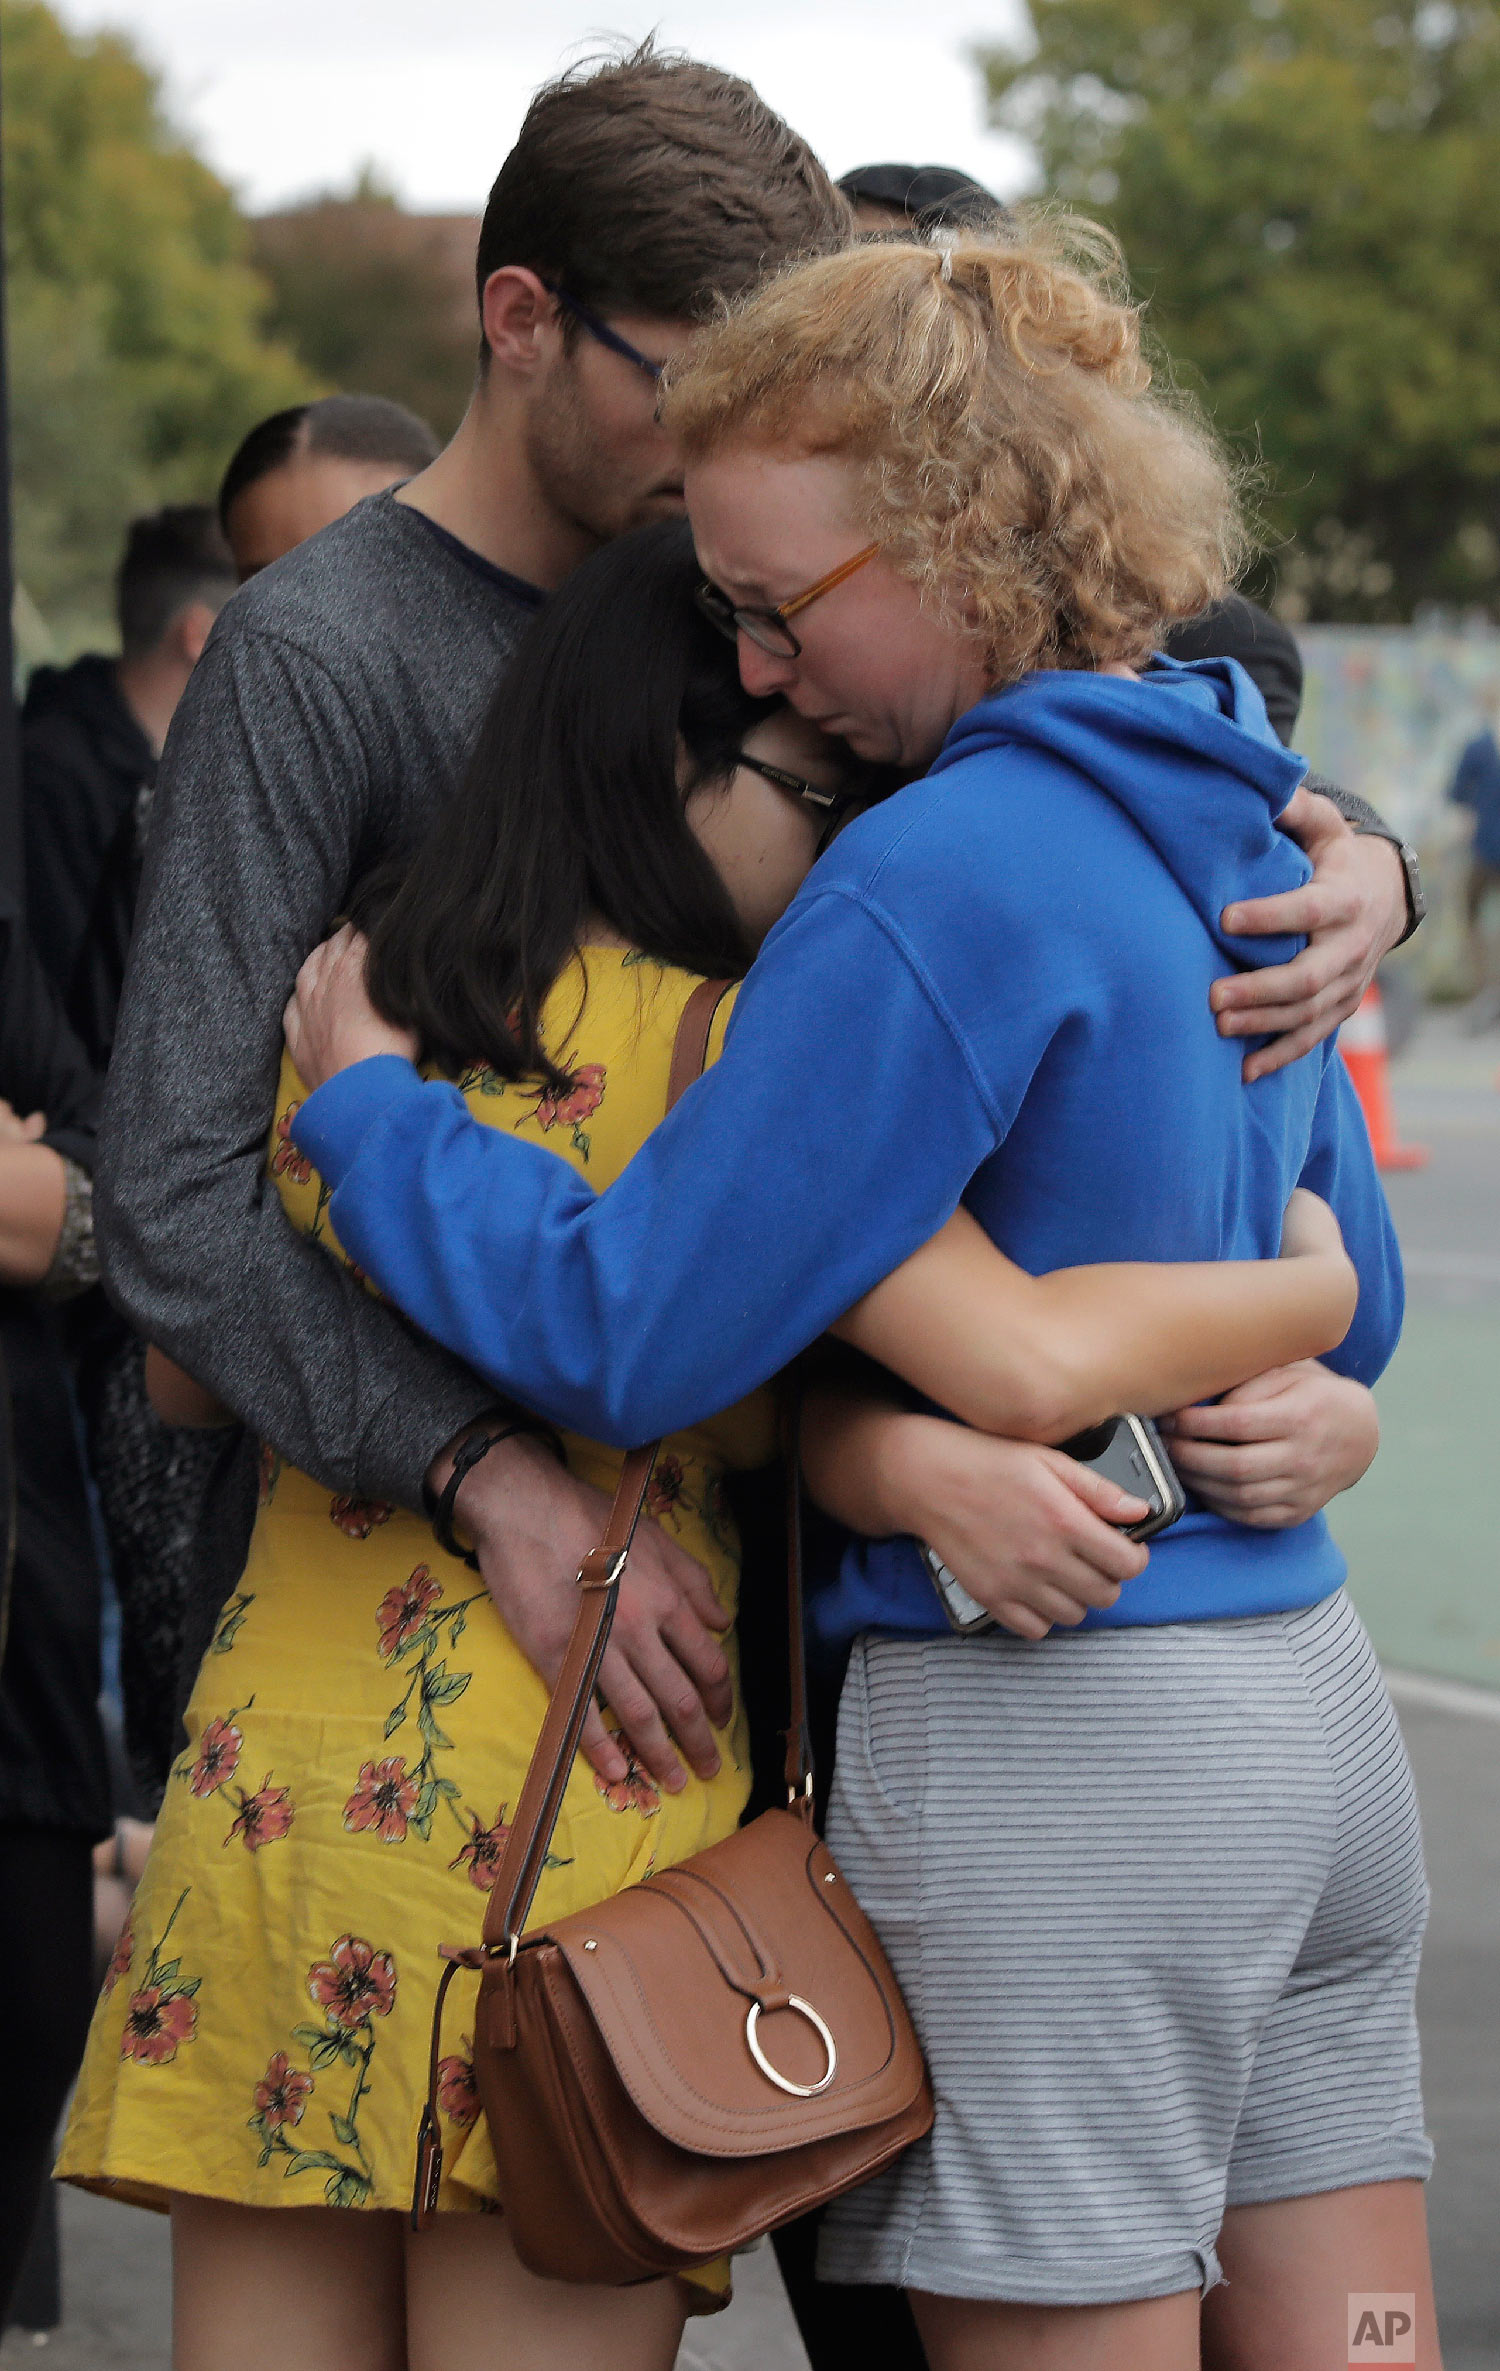 Mourners hug as they pay their respects at a makeshift memorial near the Masjid Al Noor mosque in Christchurch, New Zealand, Saturday, March 16, 2019, where one of the two mass shootings occurred.(AP Photo/Vincent Yu)